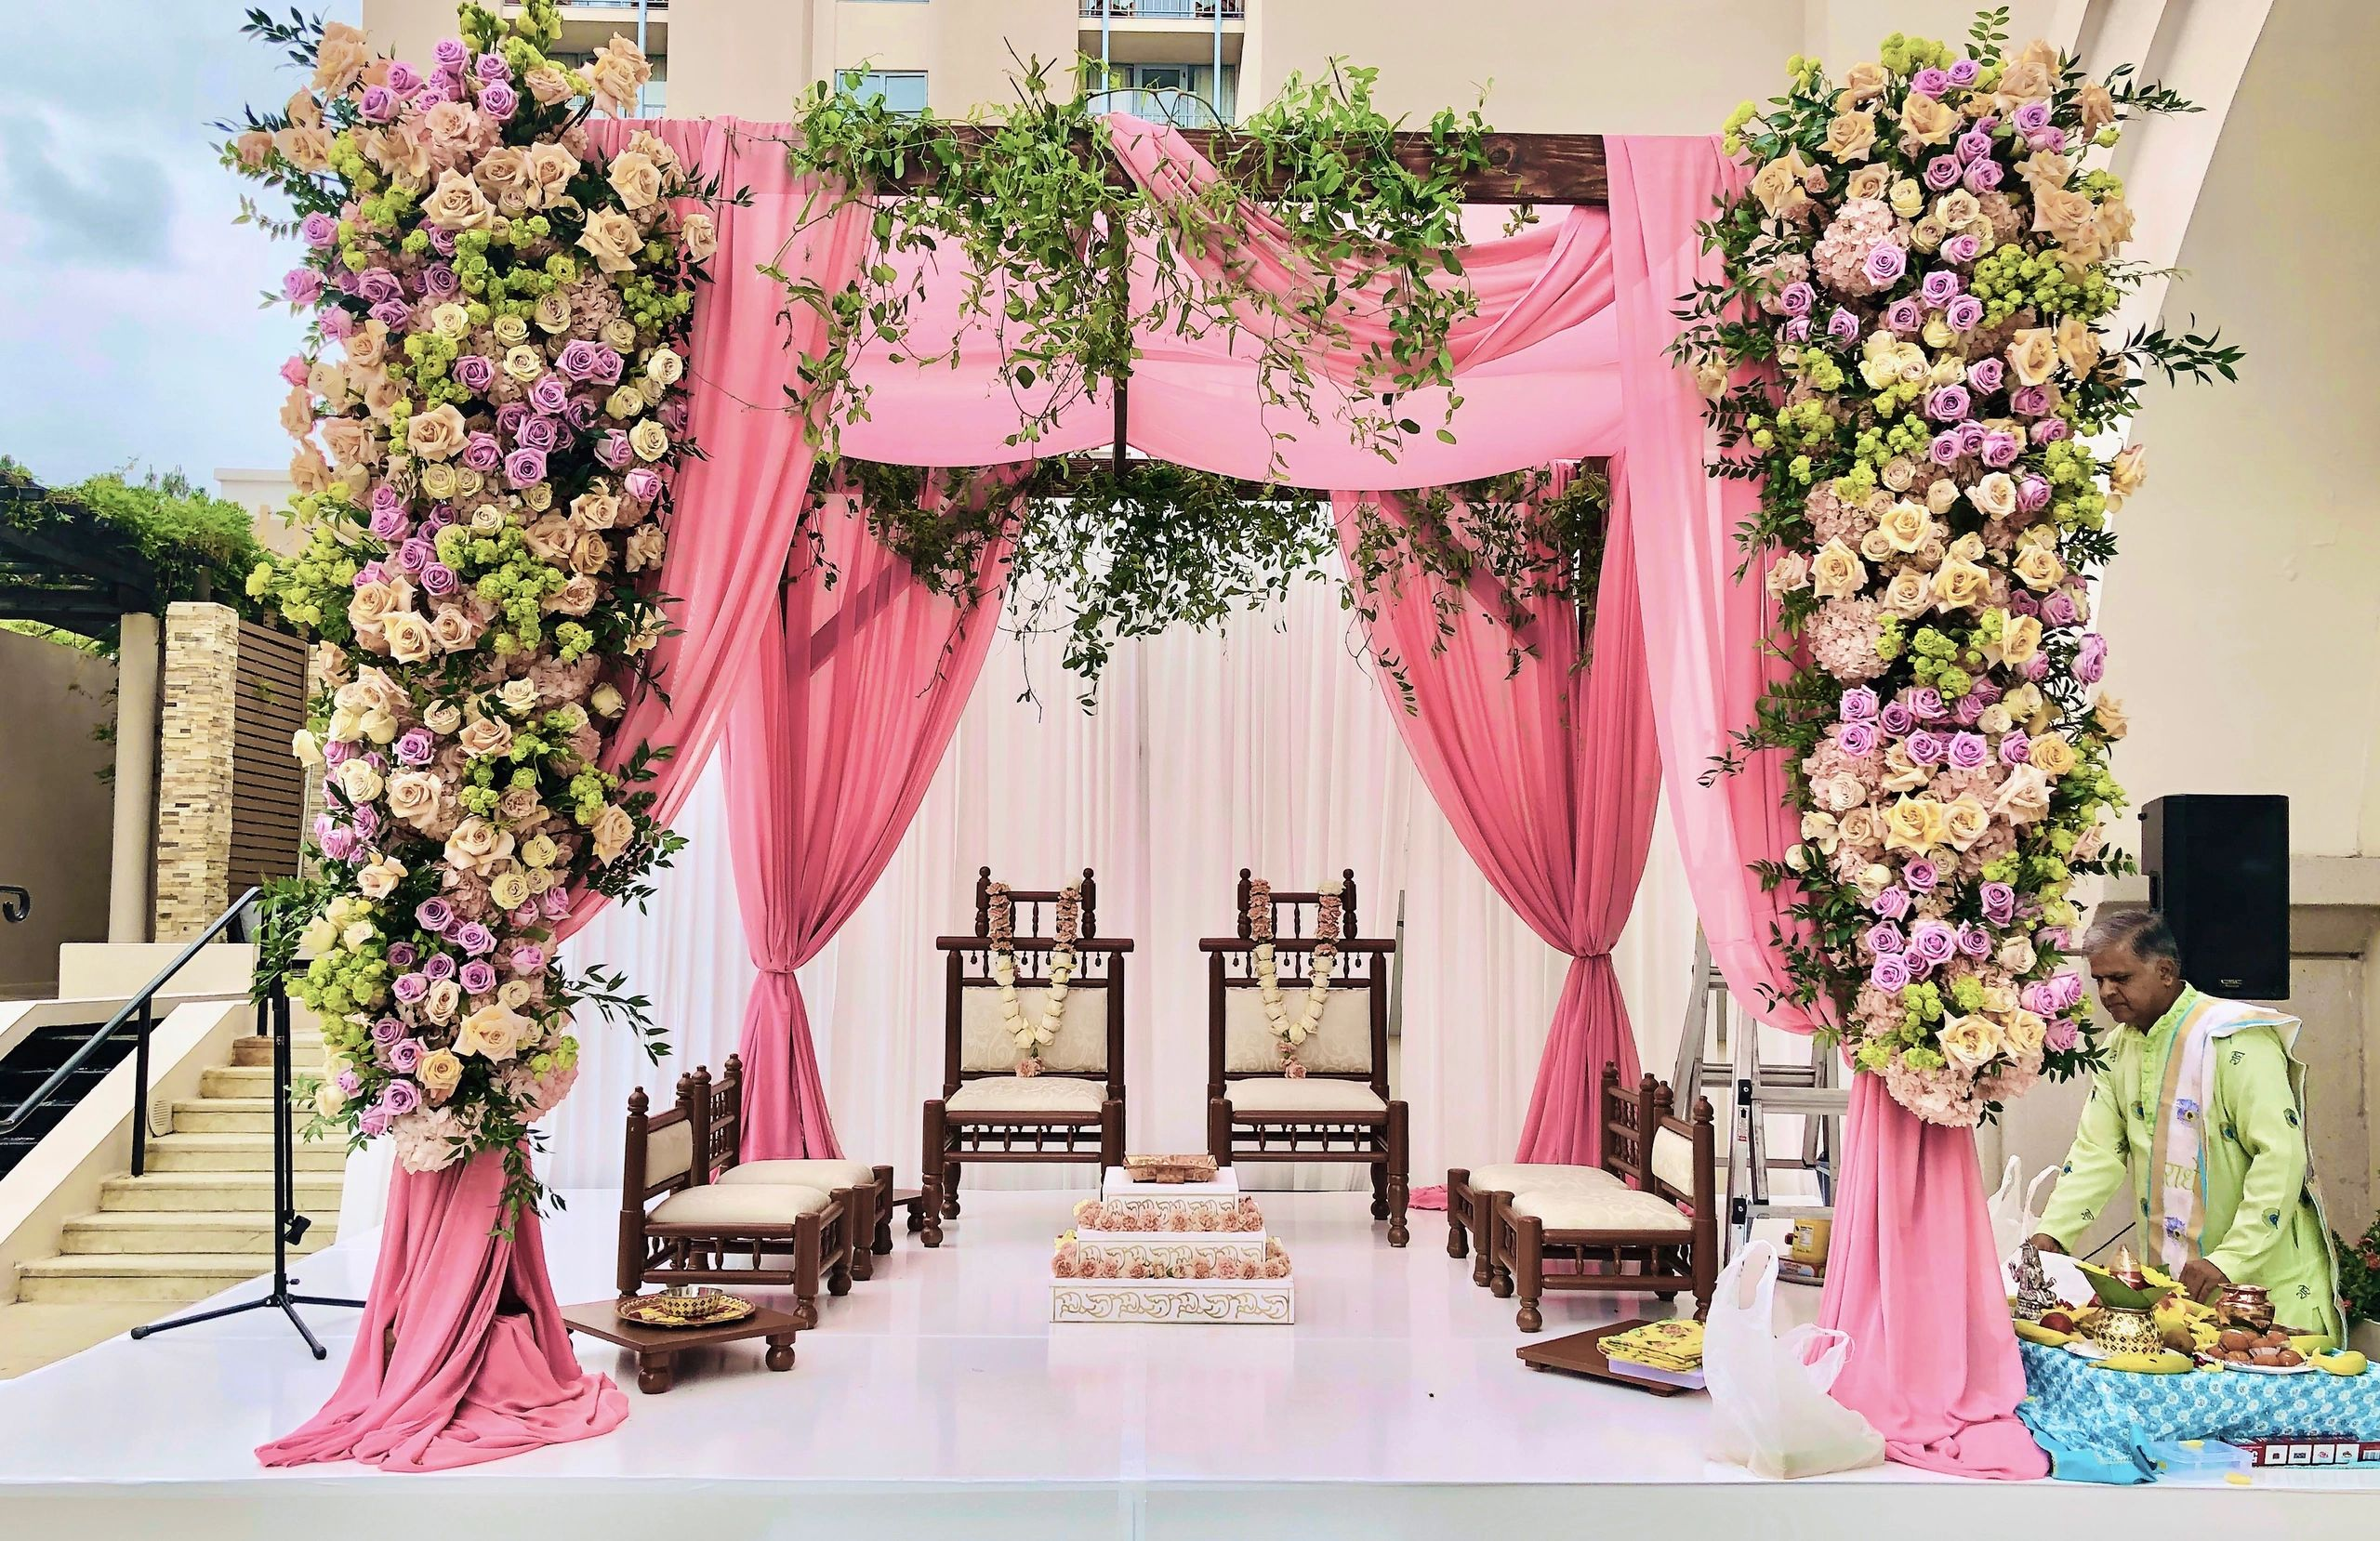 Indian Wedding Mandap for Bride and Groom Wedding Ceremony